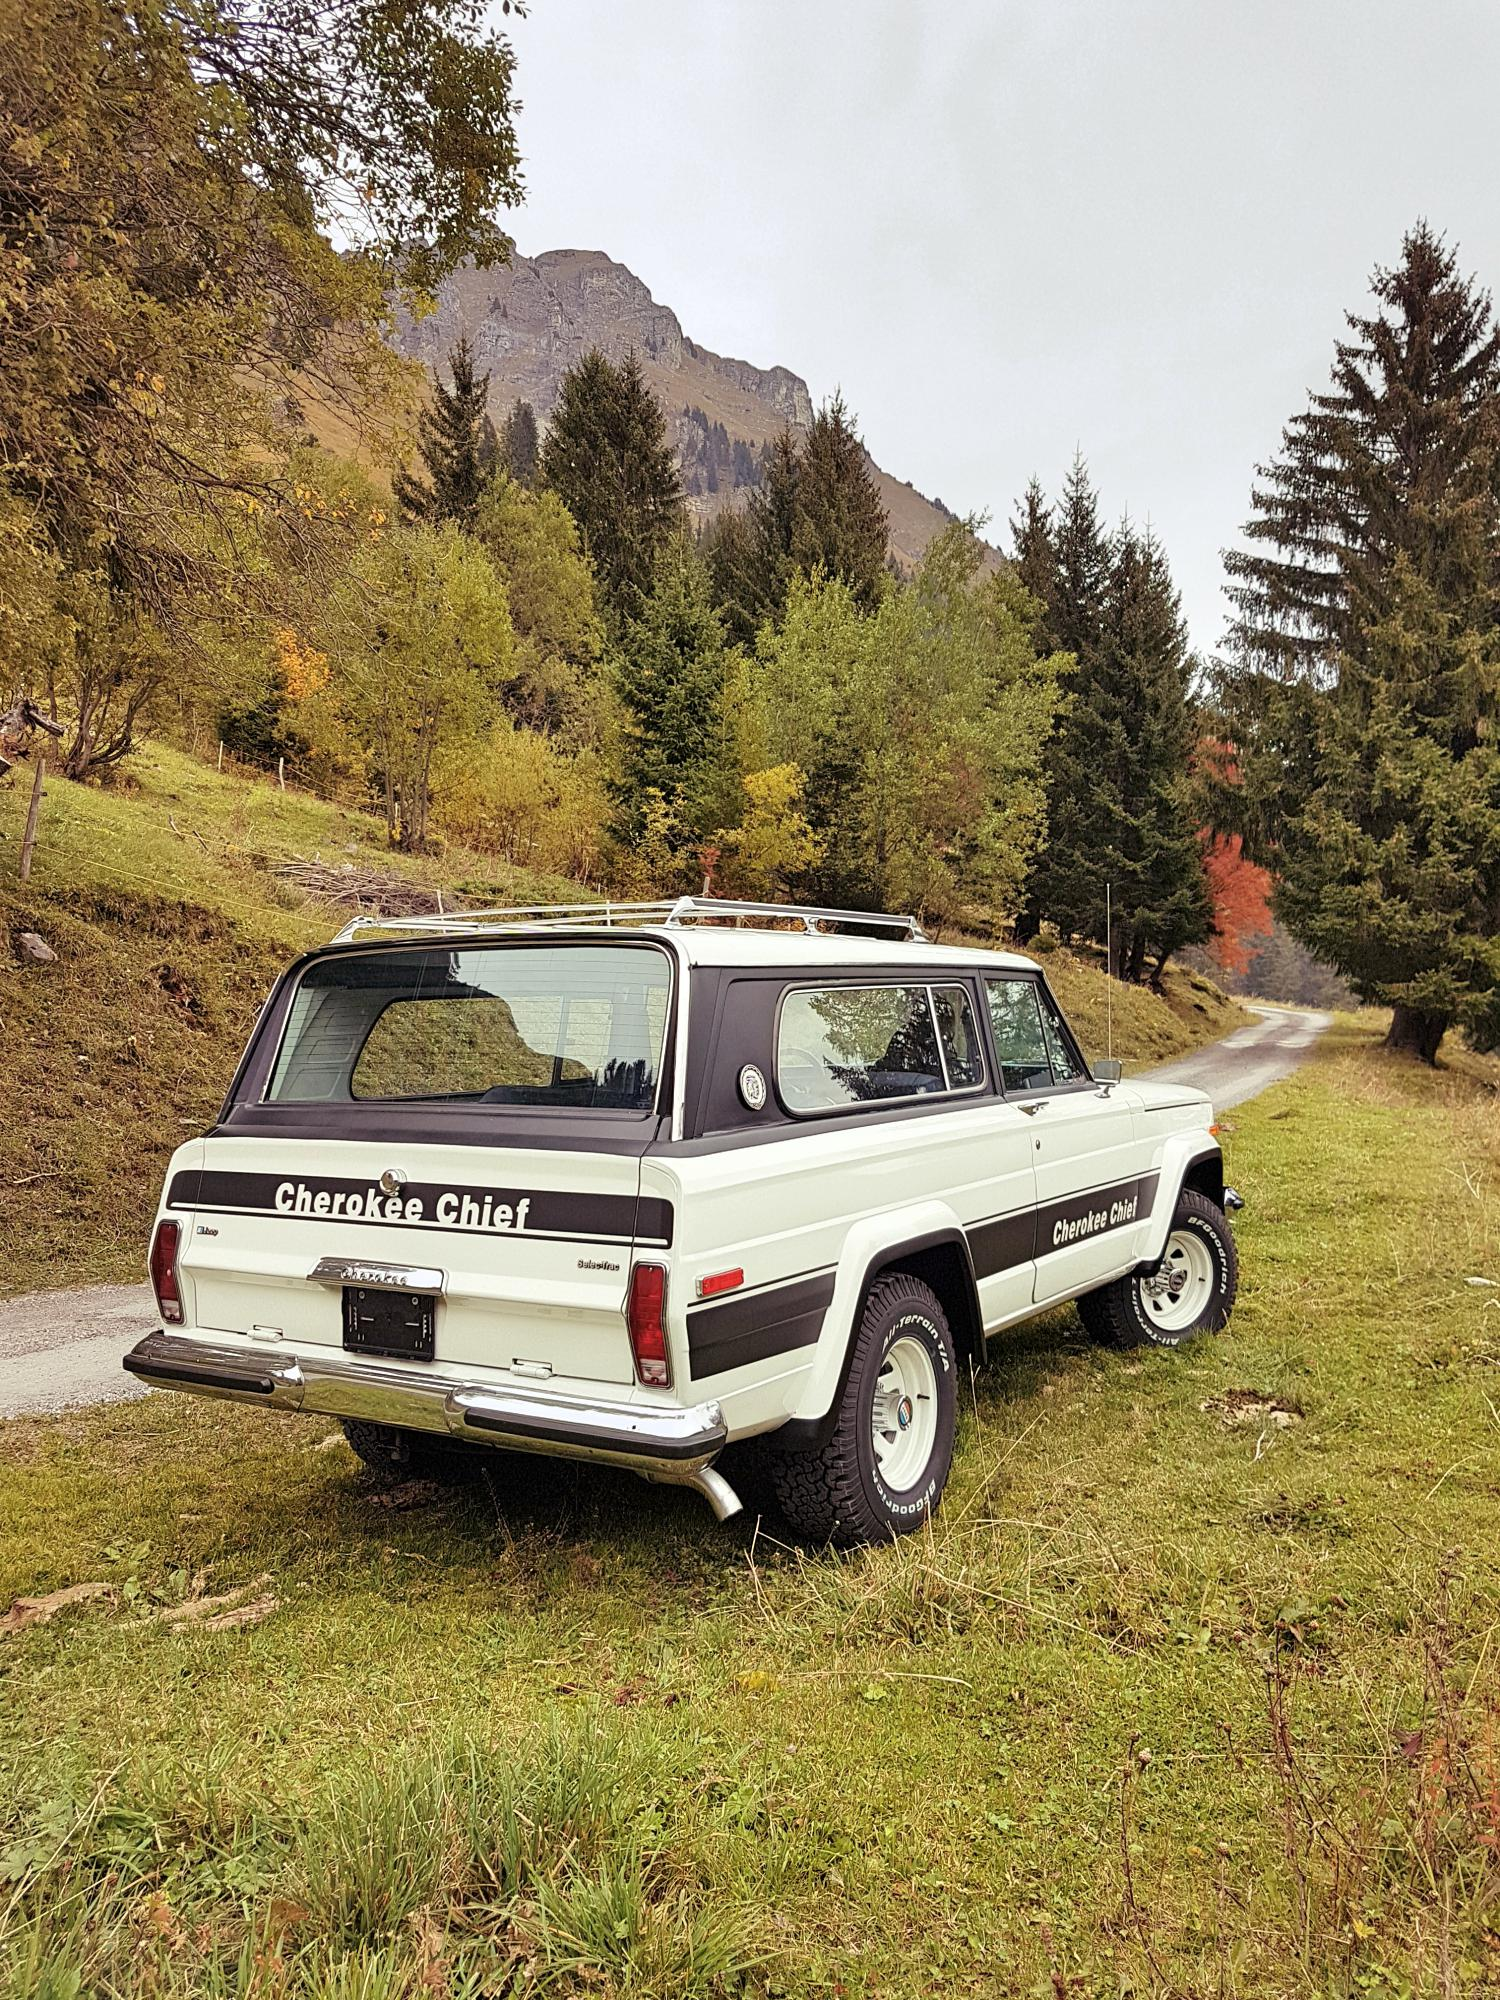 jeep-cherokee-chief-1978-shooting-morgins-switzerland-32.jpg